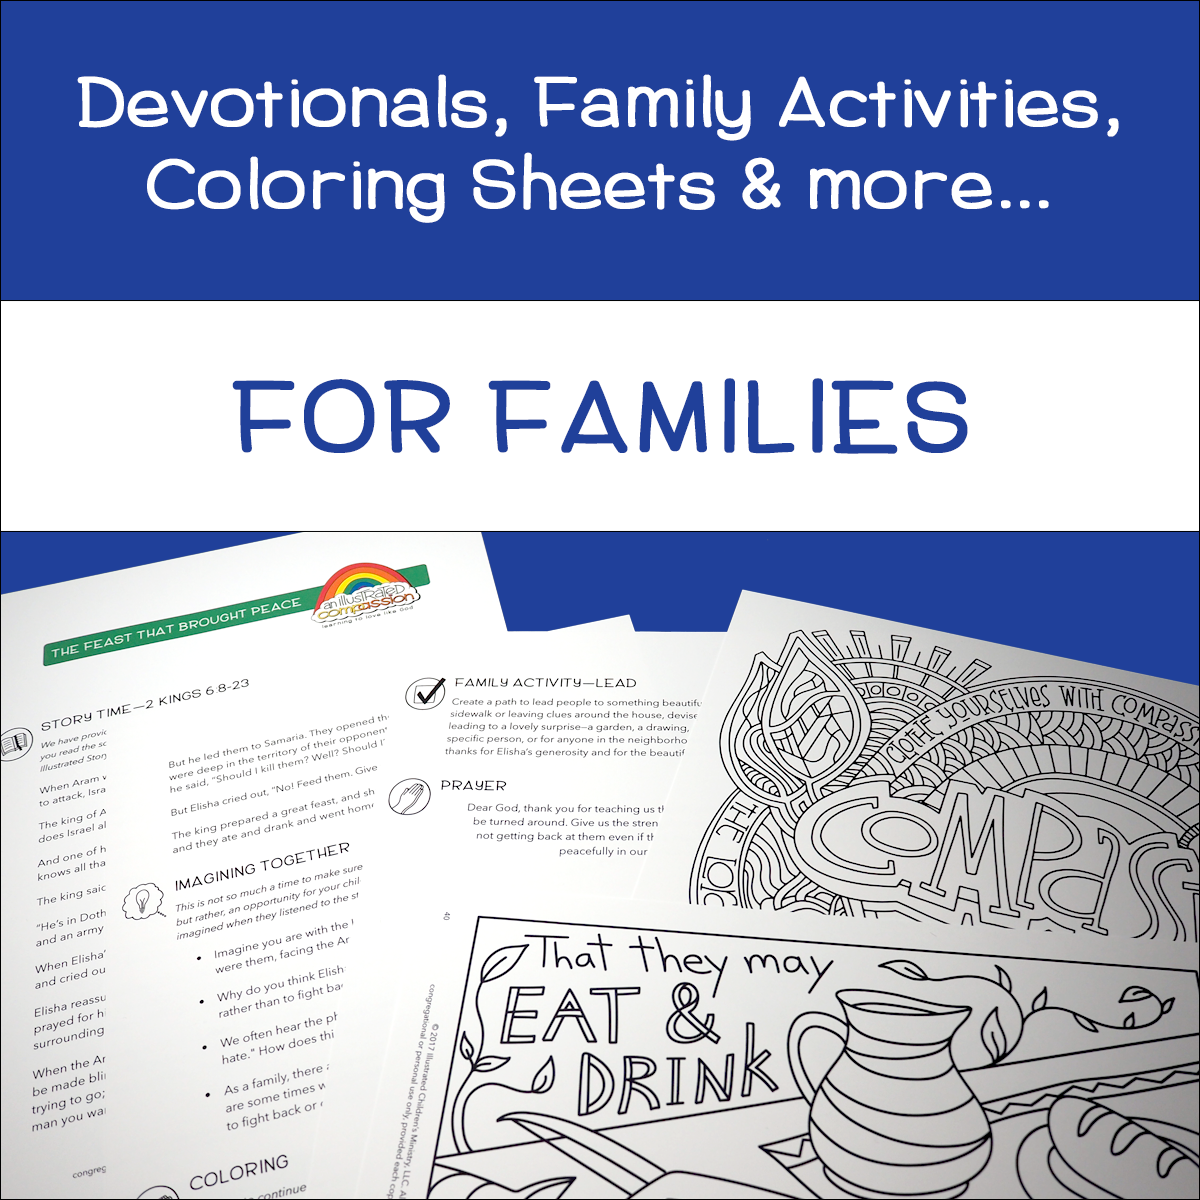 An Illustrated Compassion for Families Devotional, Activities, Coloring Sheets and more